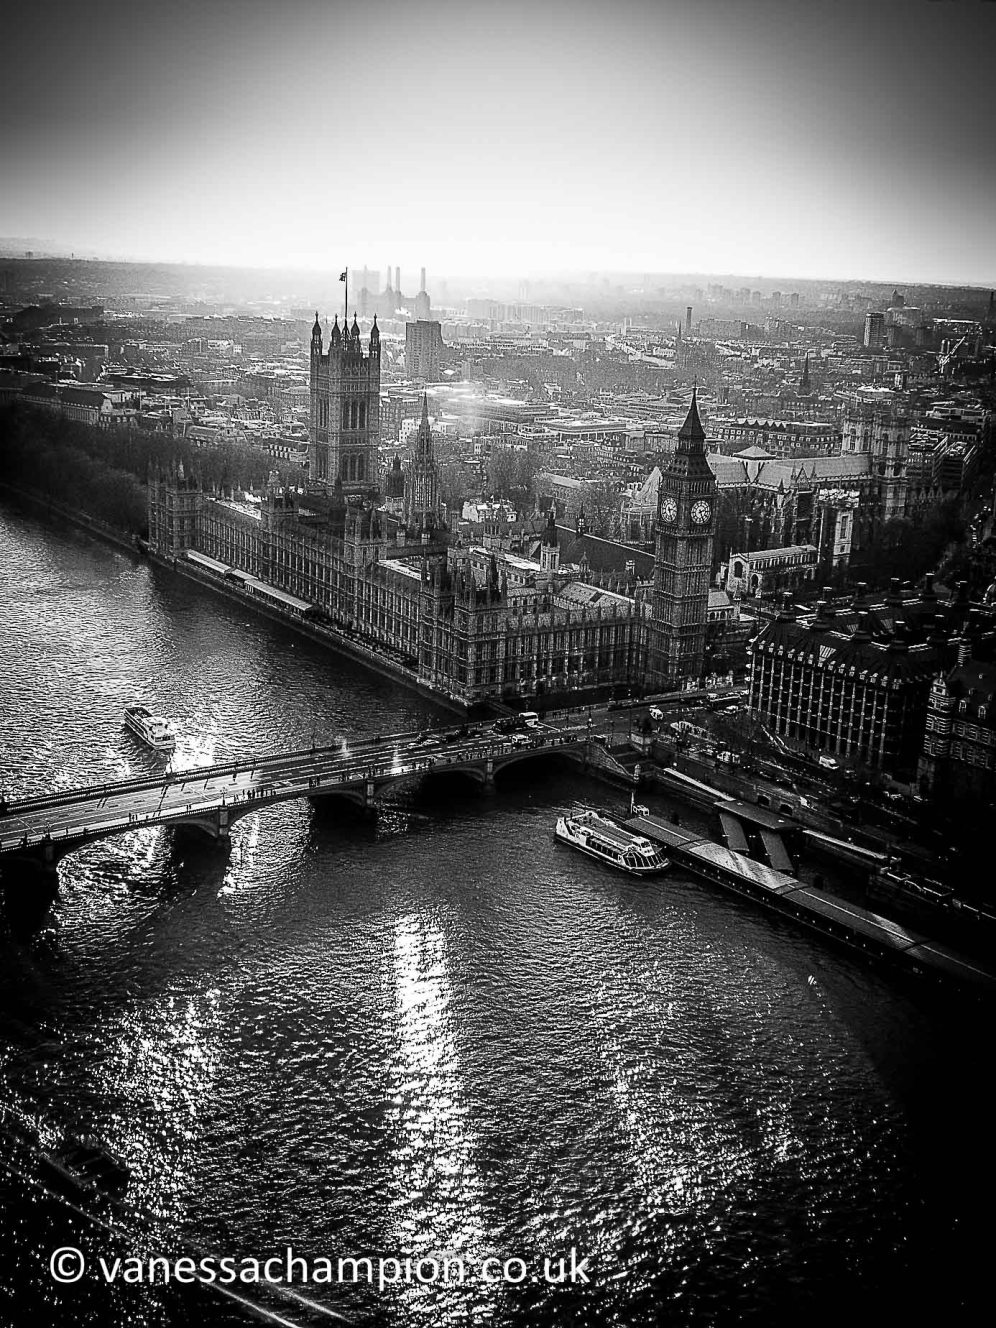 Seat of Government Houses of Parliament London on the Thames London Prints for offices, hotels, foyers, interior design, architecture, buildings, office spaces, new offices, bespoke and large stock library